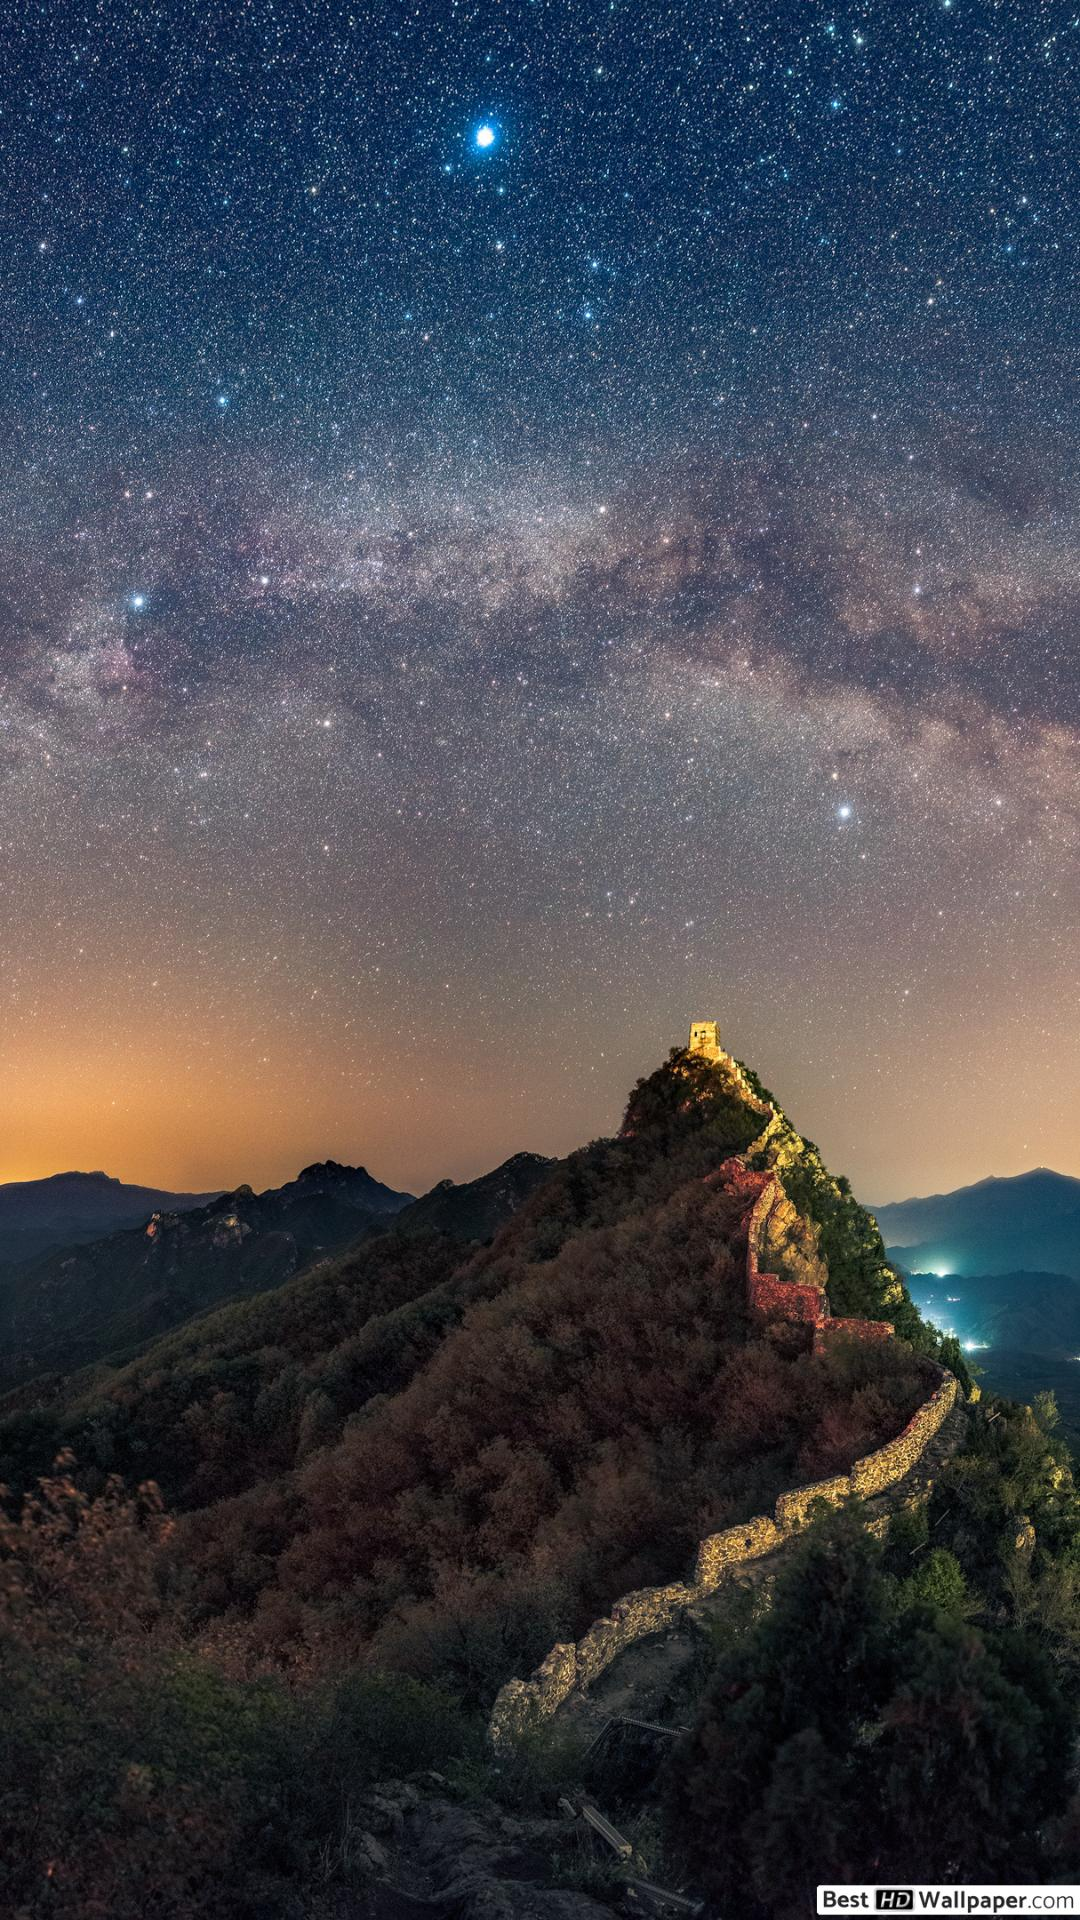 Starry night at the Great Wall of China HD wallpaper download 1080x1920